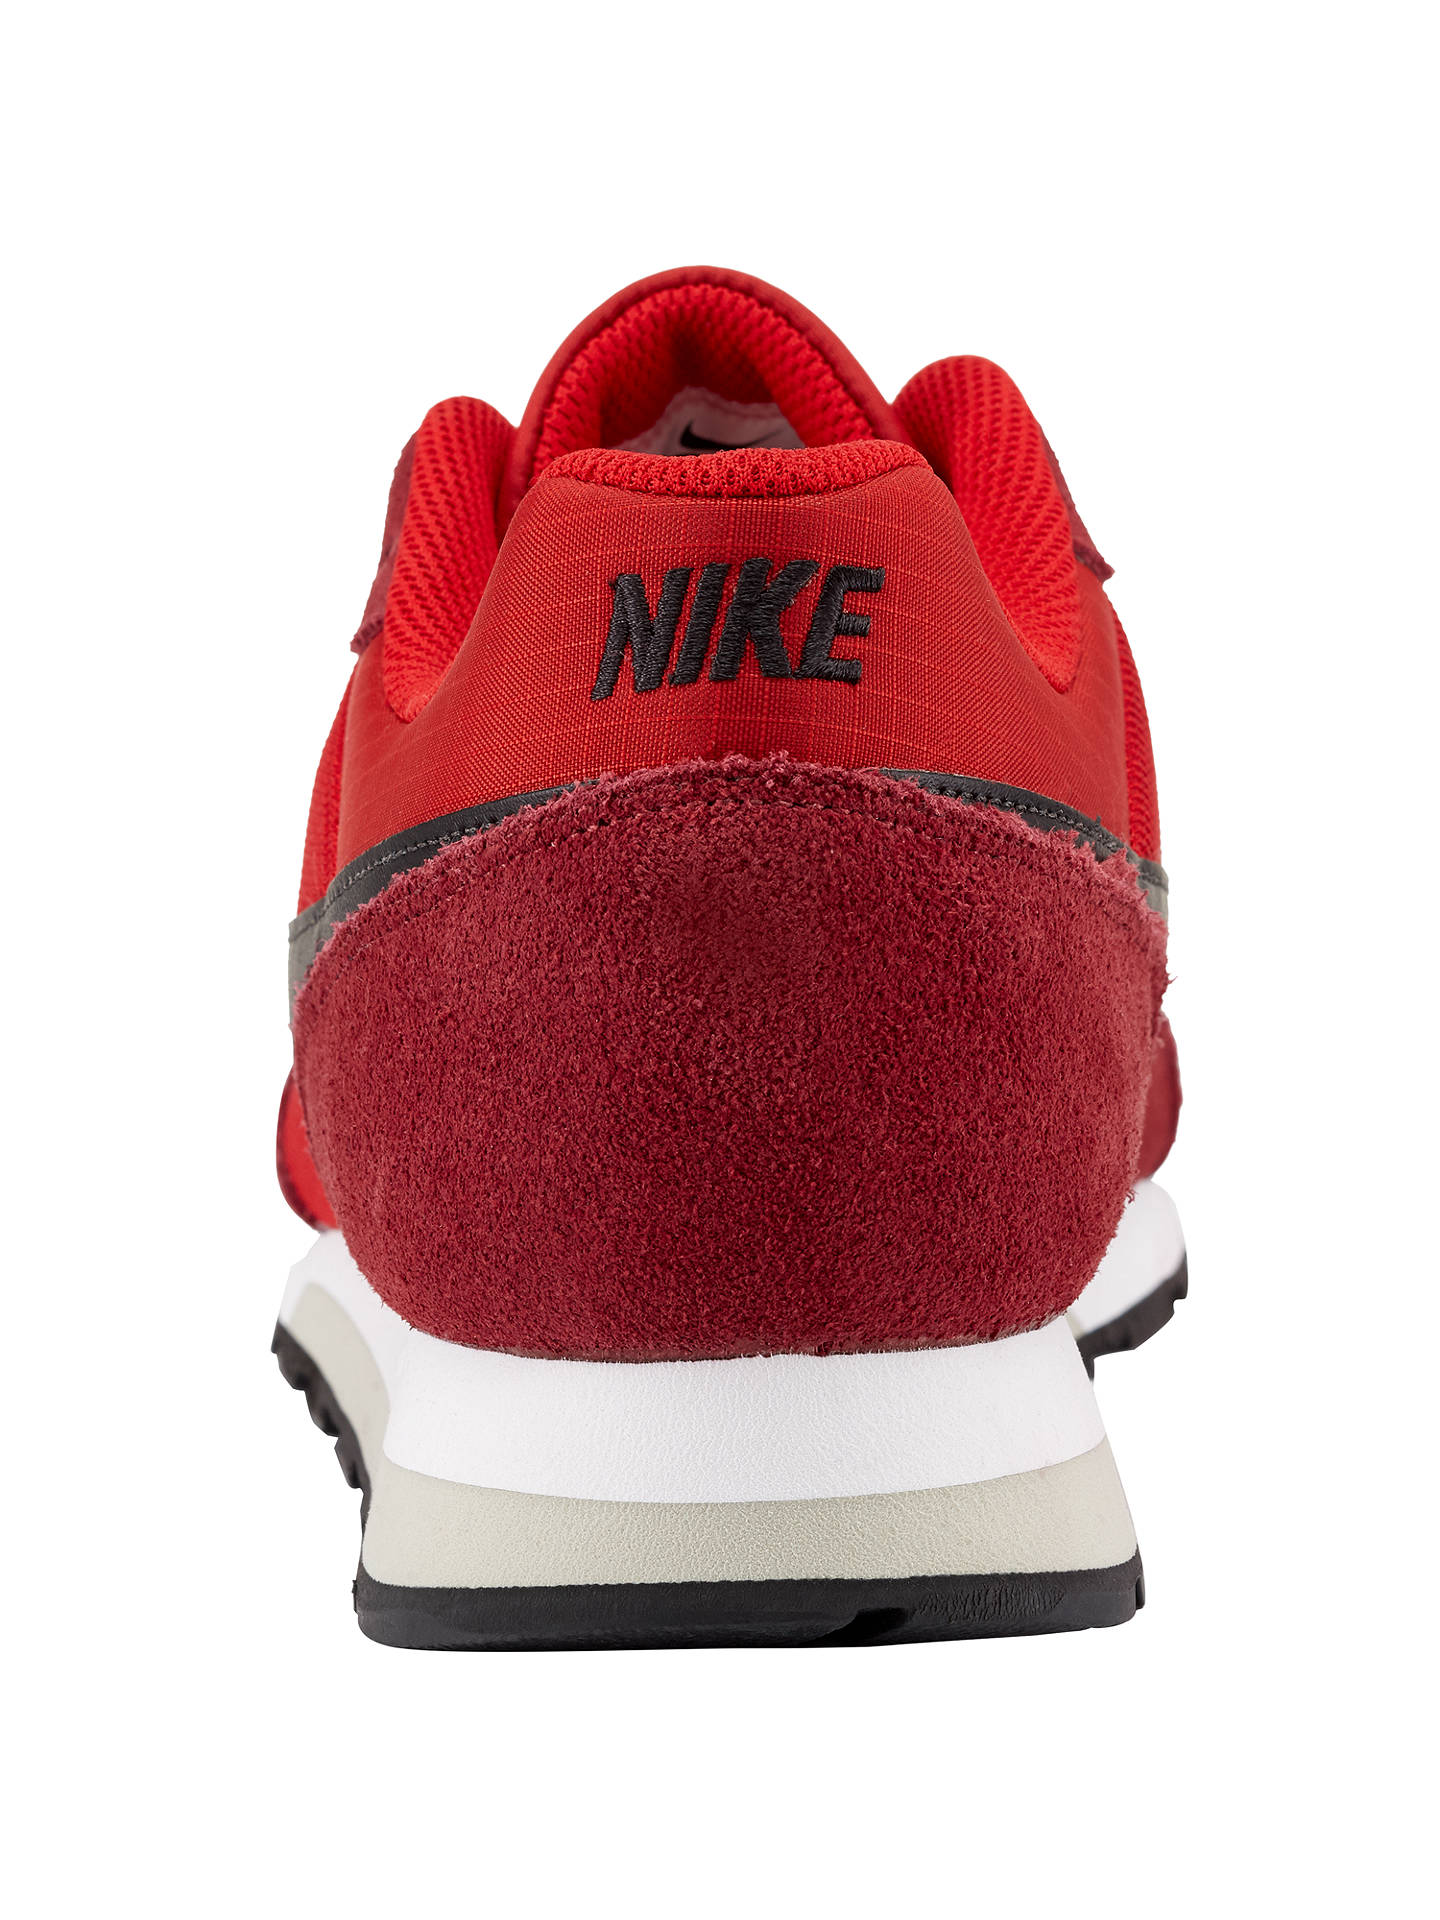 premium selection f83ca 536ad Buy Nike MD Runner 2 Trainers, Red Black, 7 Online at johnlewis.